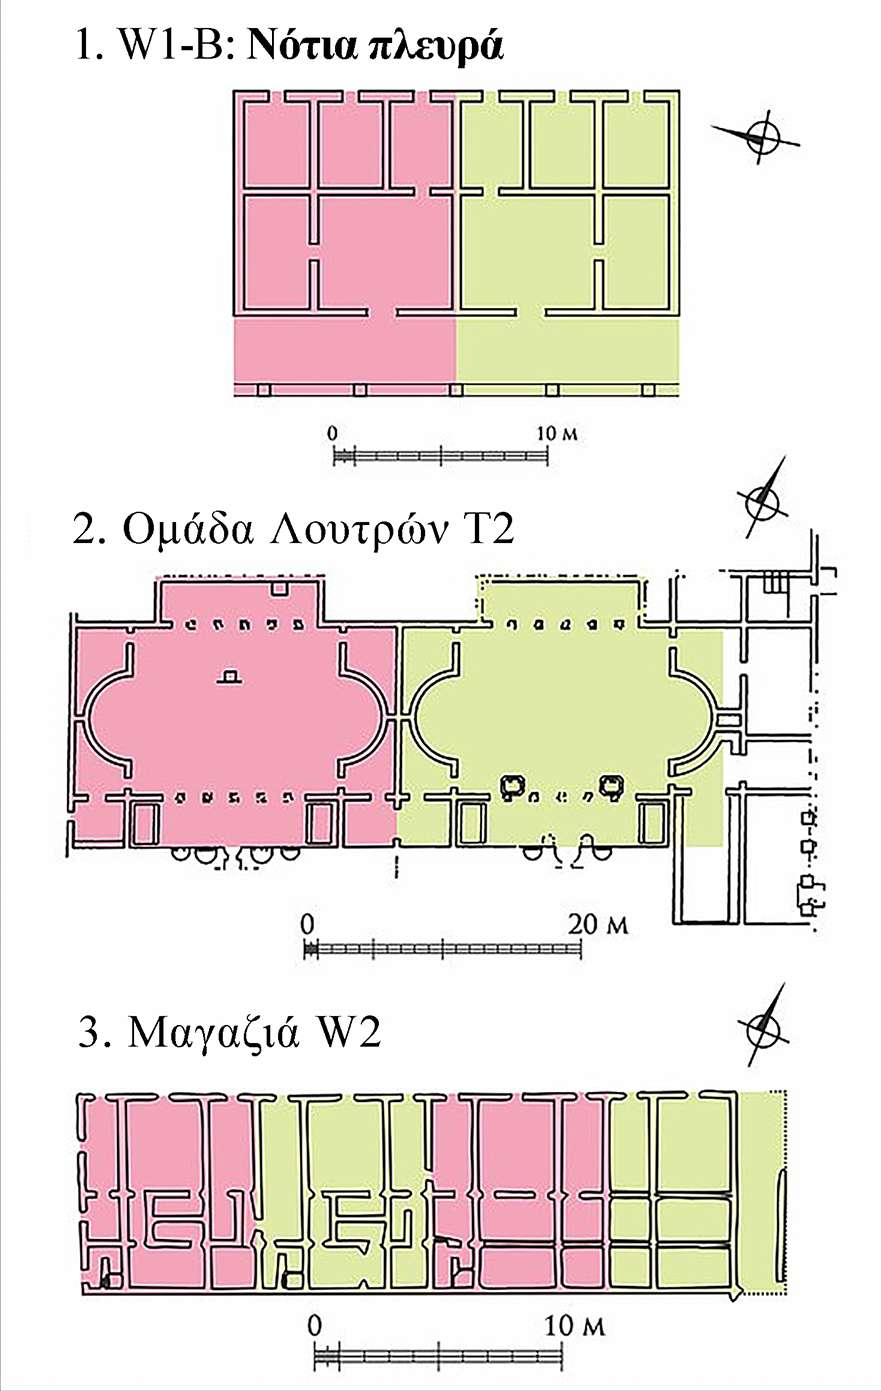 Layout of the modular buildings in Marea Such original urban planning was rare at the time when most people just repurposed Roman and Greek structures